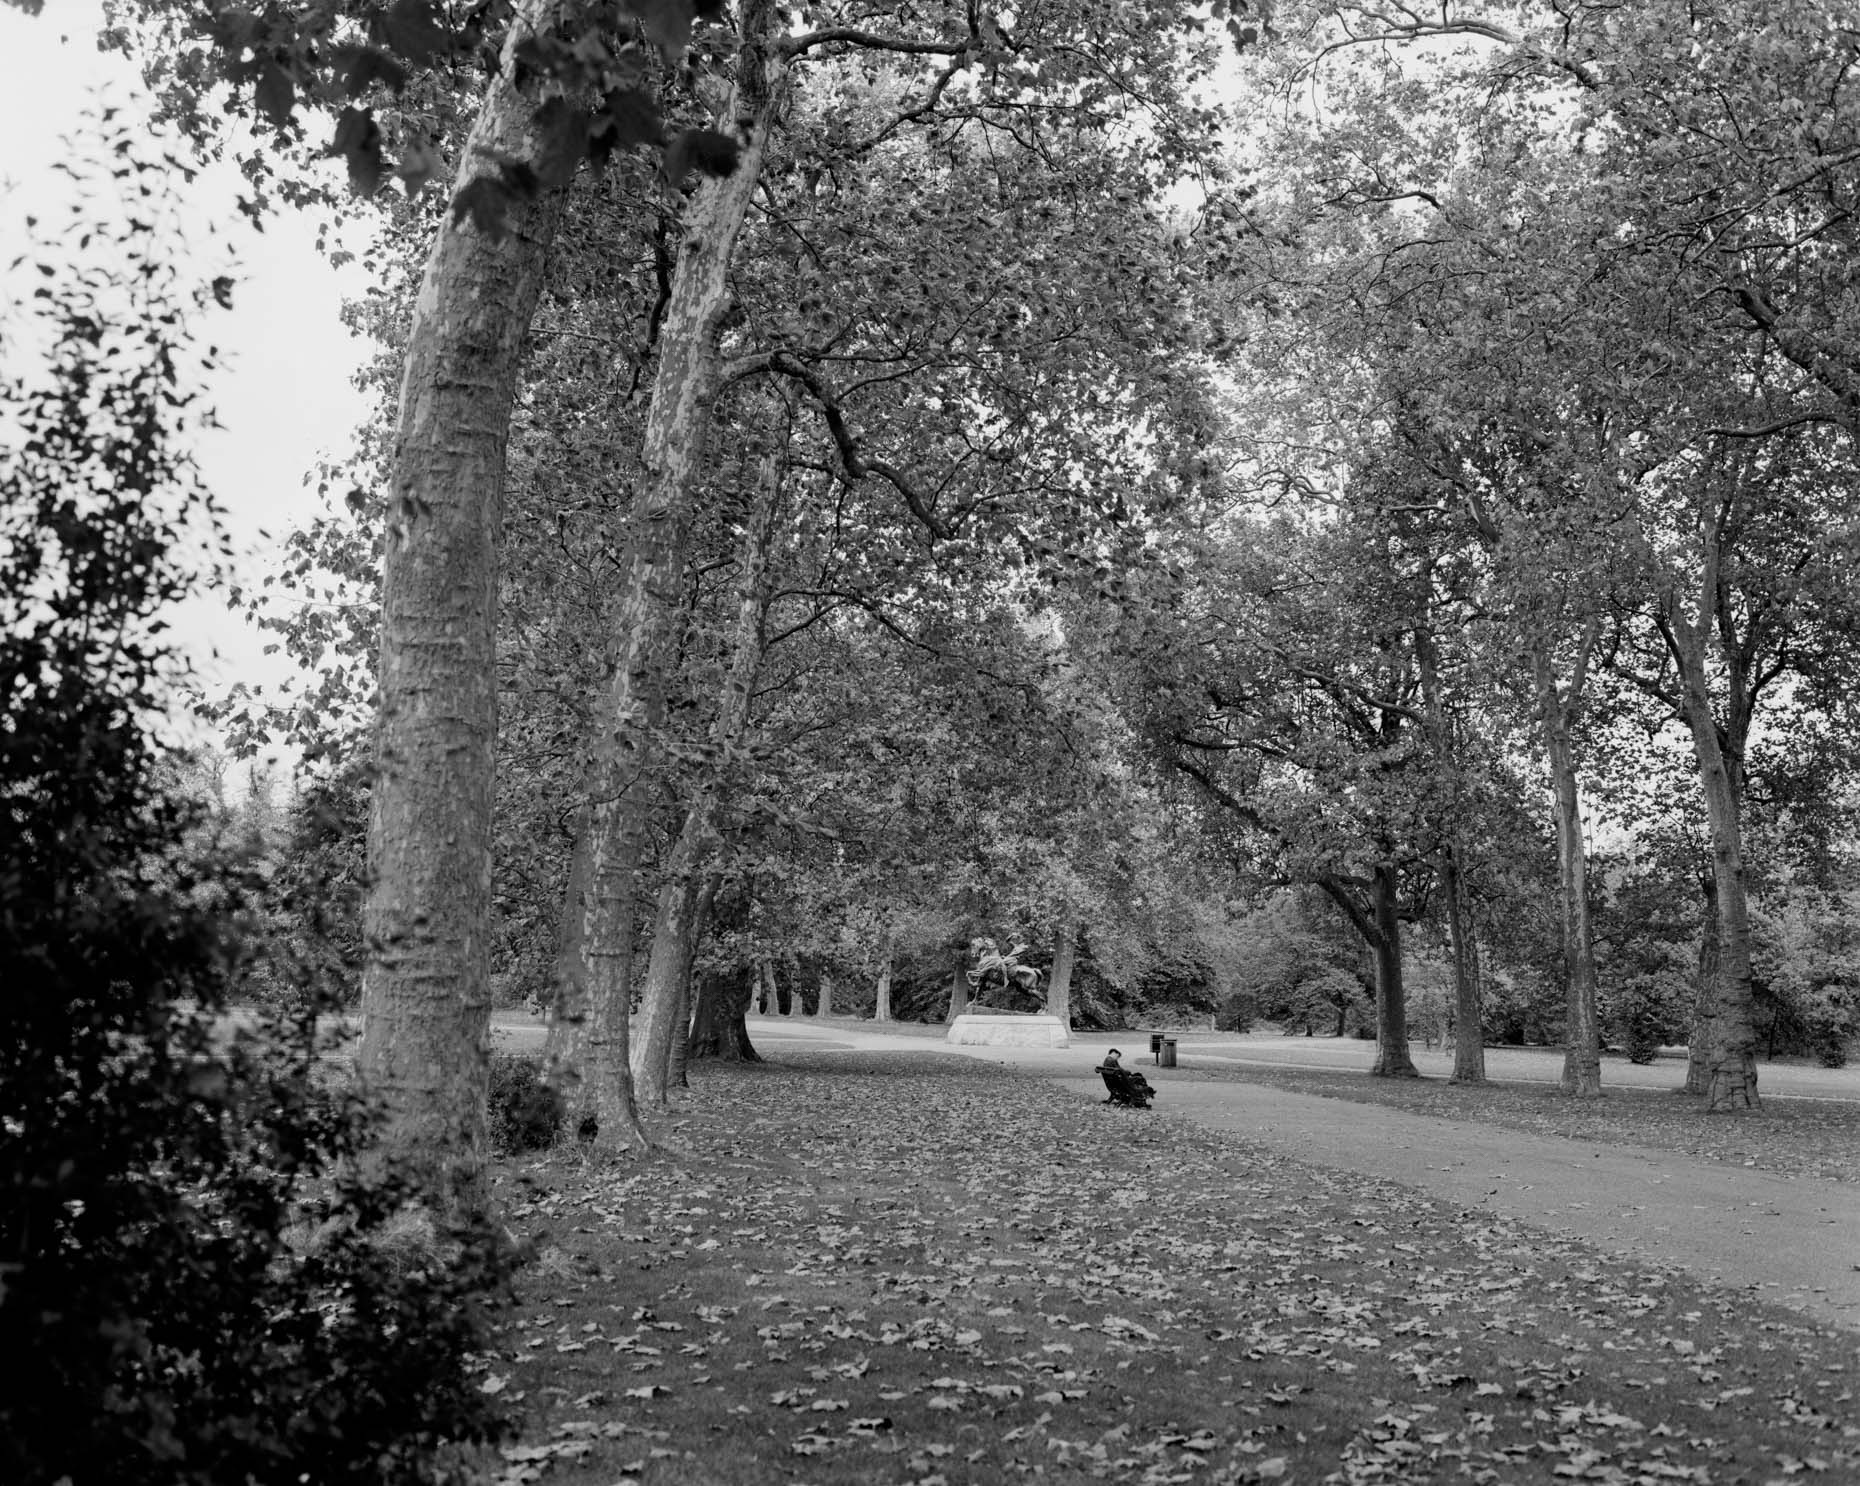 Axel Bernstorff, Collectable limited edition fine photographic art prints. A quiet moment by the Physical Energy Statue, Kensington Palace Gardens, in the Royal Borough of Kensington and Chelsea in London, England.